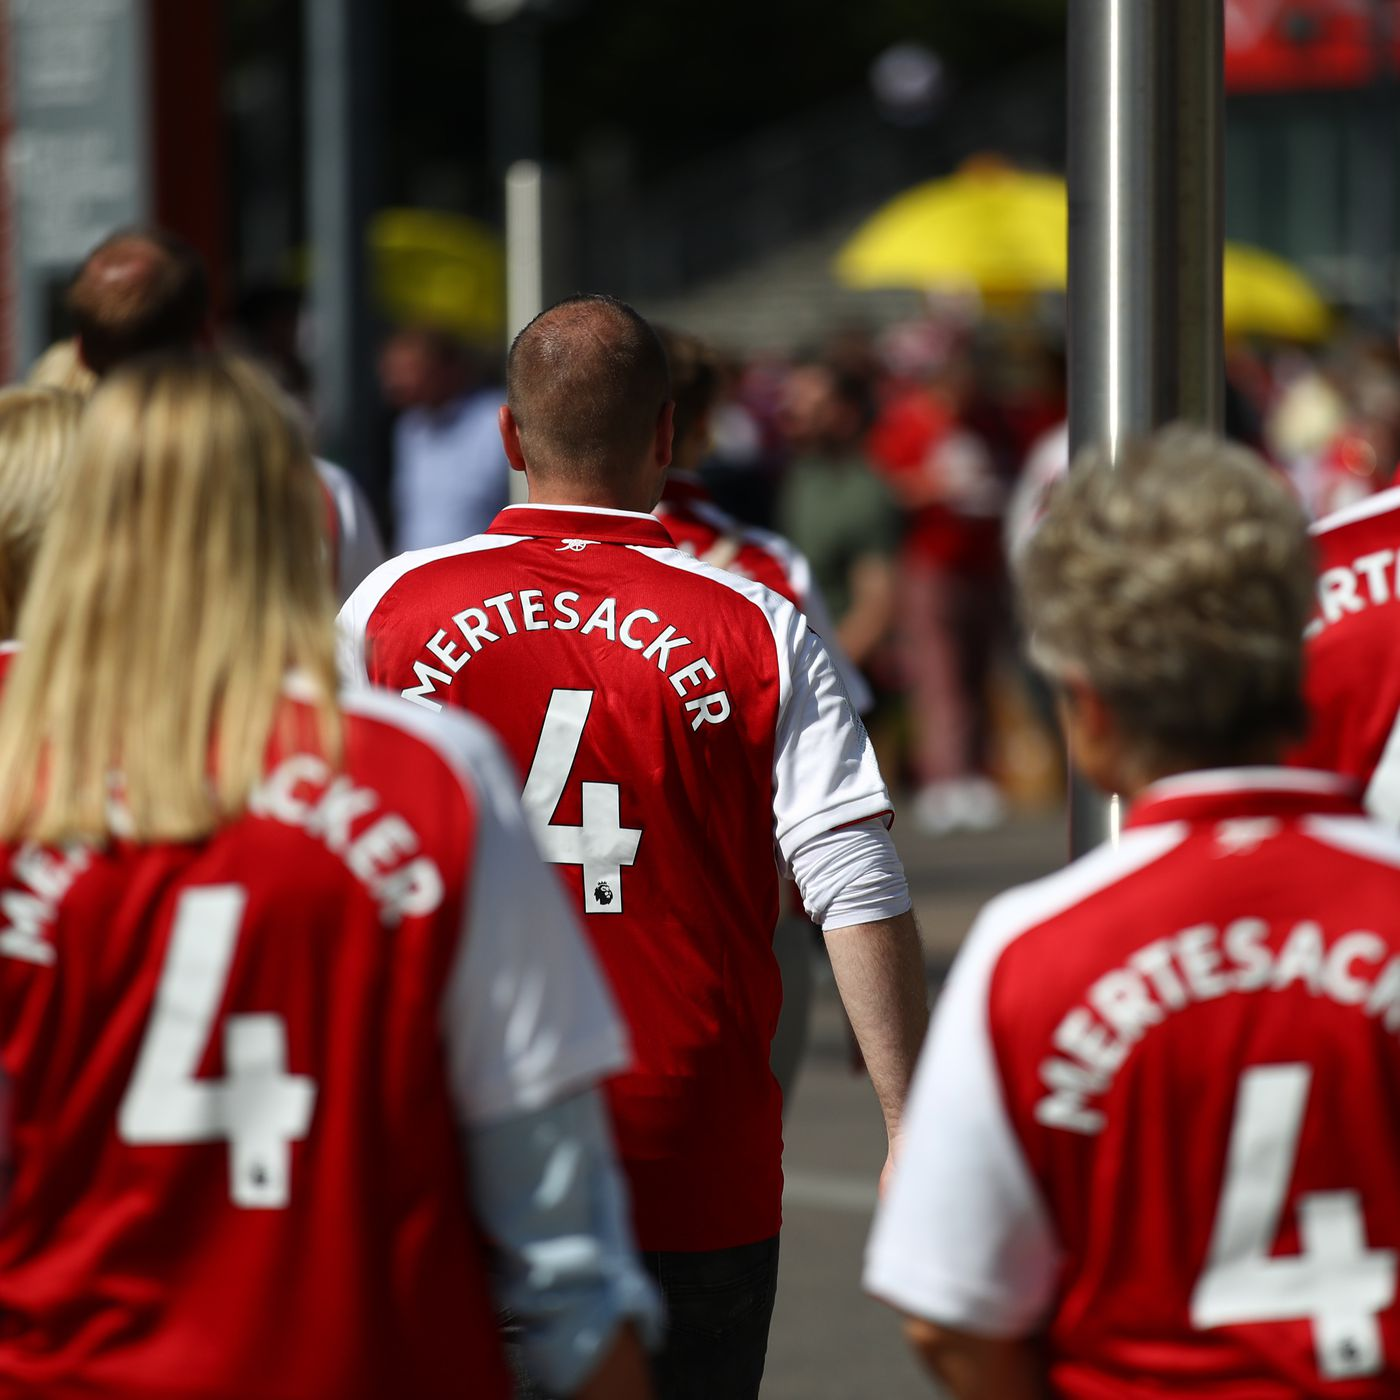 Arsenal Announce Change 4 Players Get New Shirt Numbers The Short Fuse